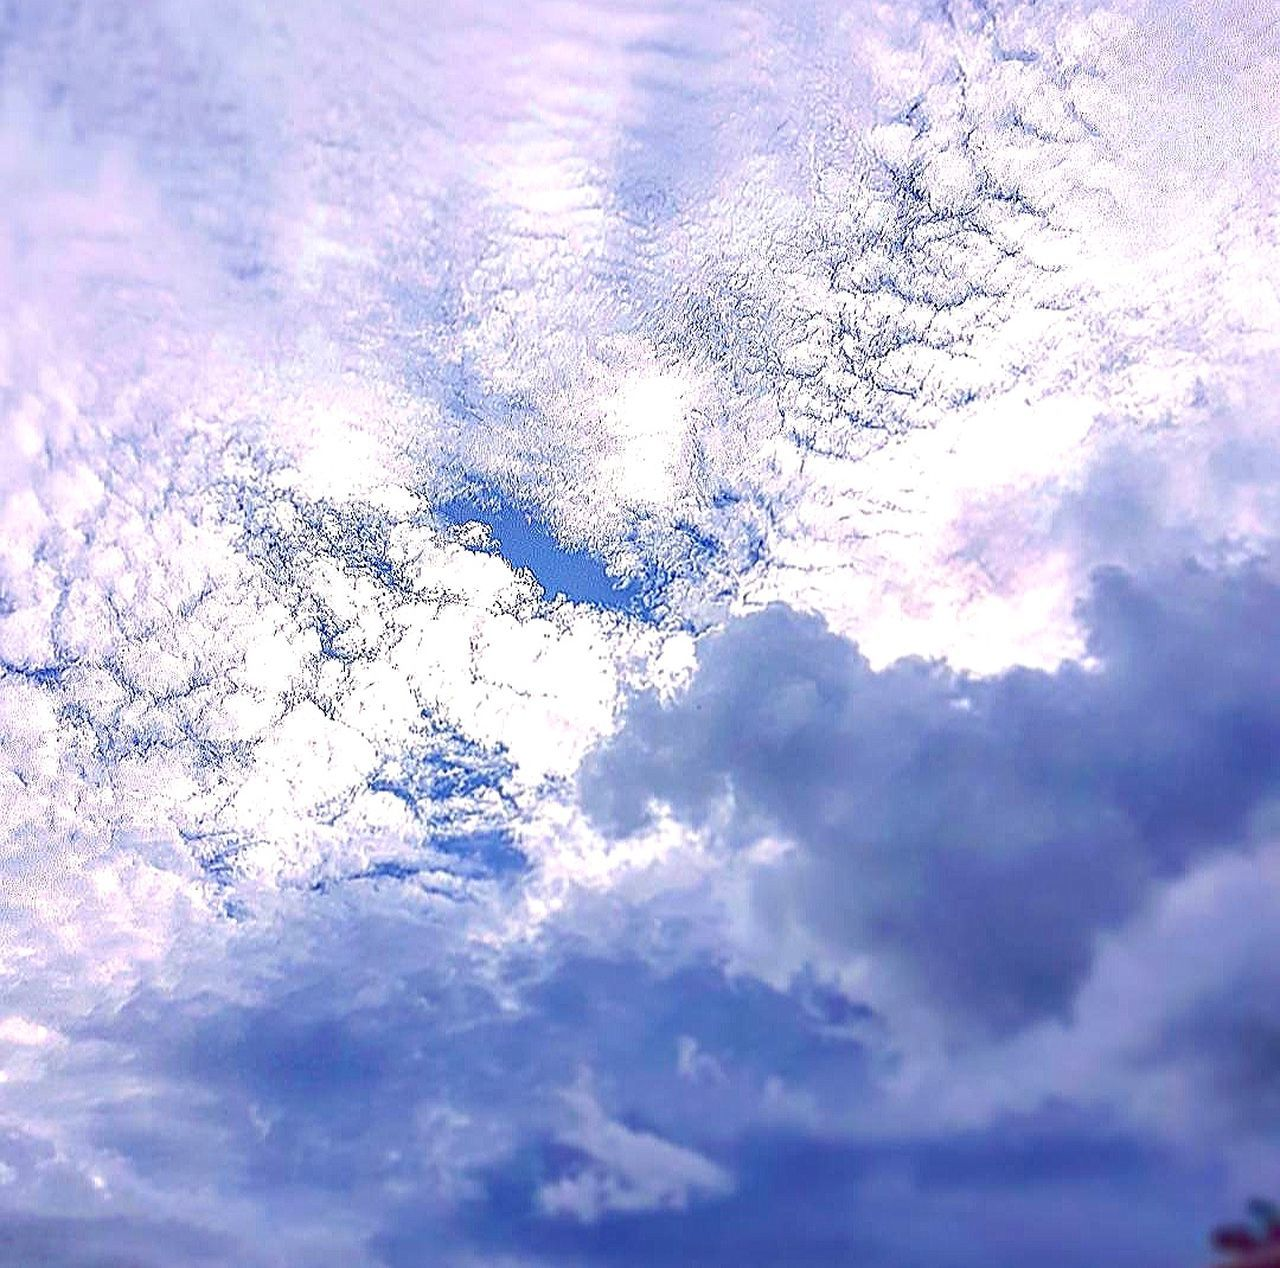 Cloud - Sky Sky Nature Cloudscape No People Low Angle View Beauty In Nature Backgrounds Close-up Outdoors Day Full Frame Scenics Tree Freshness